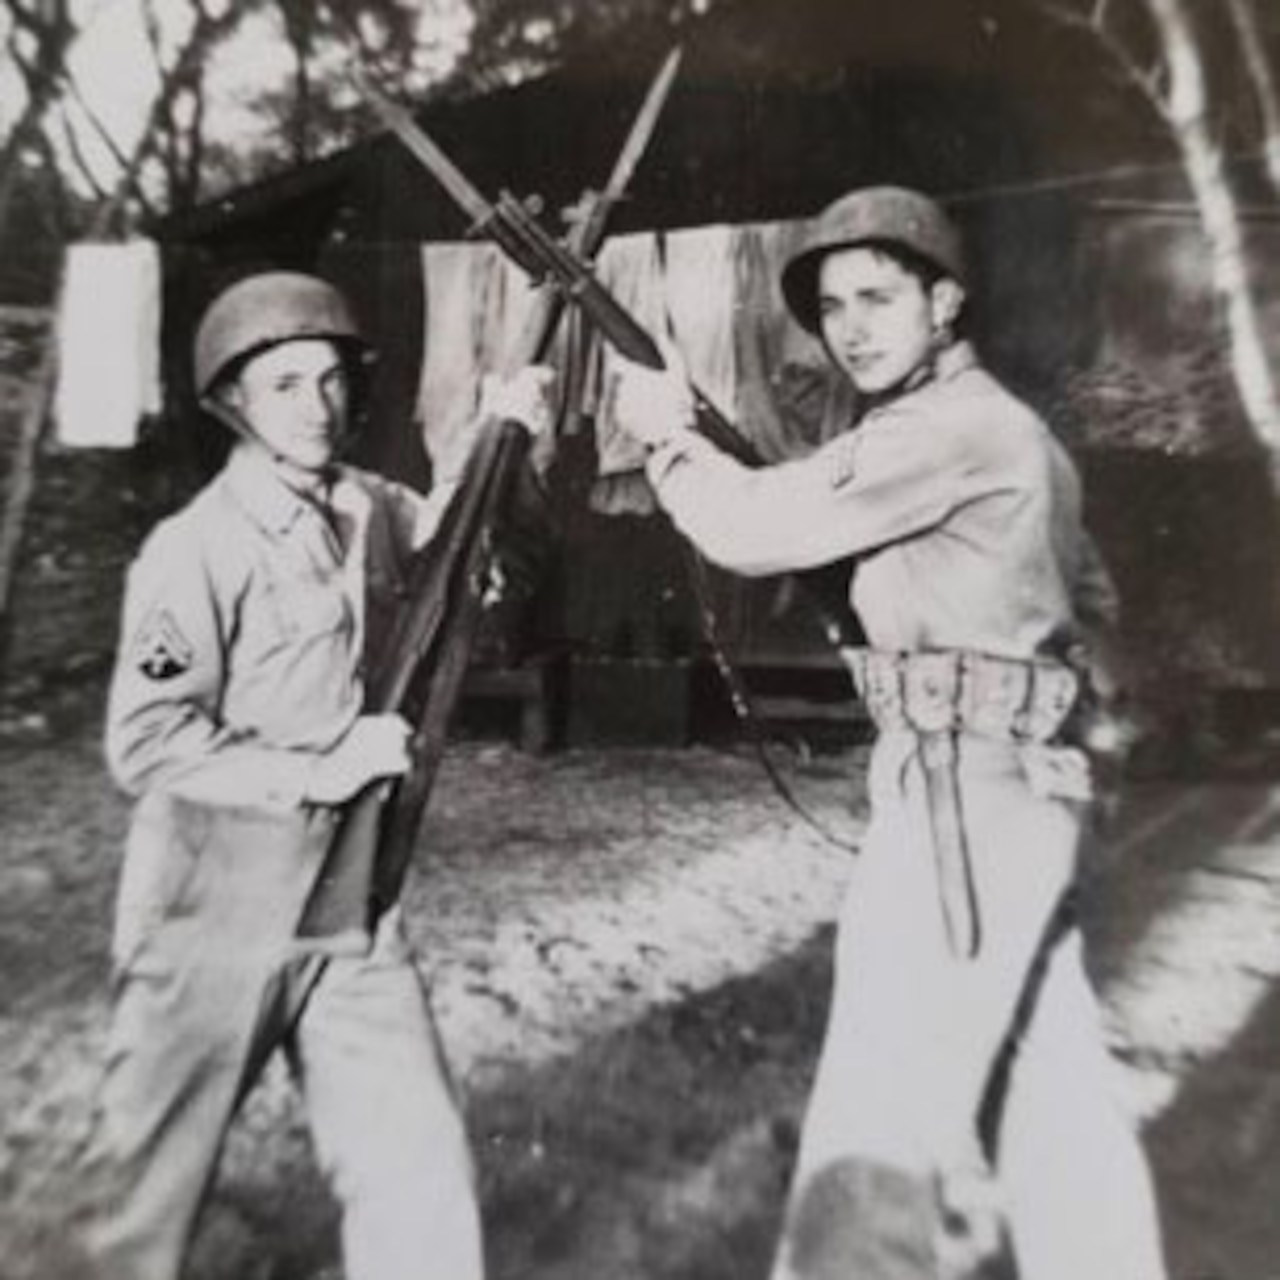 Two soldiers pose for a photo with their rifles crossed